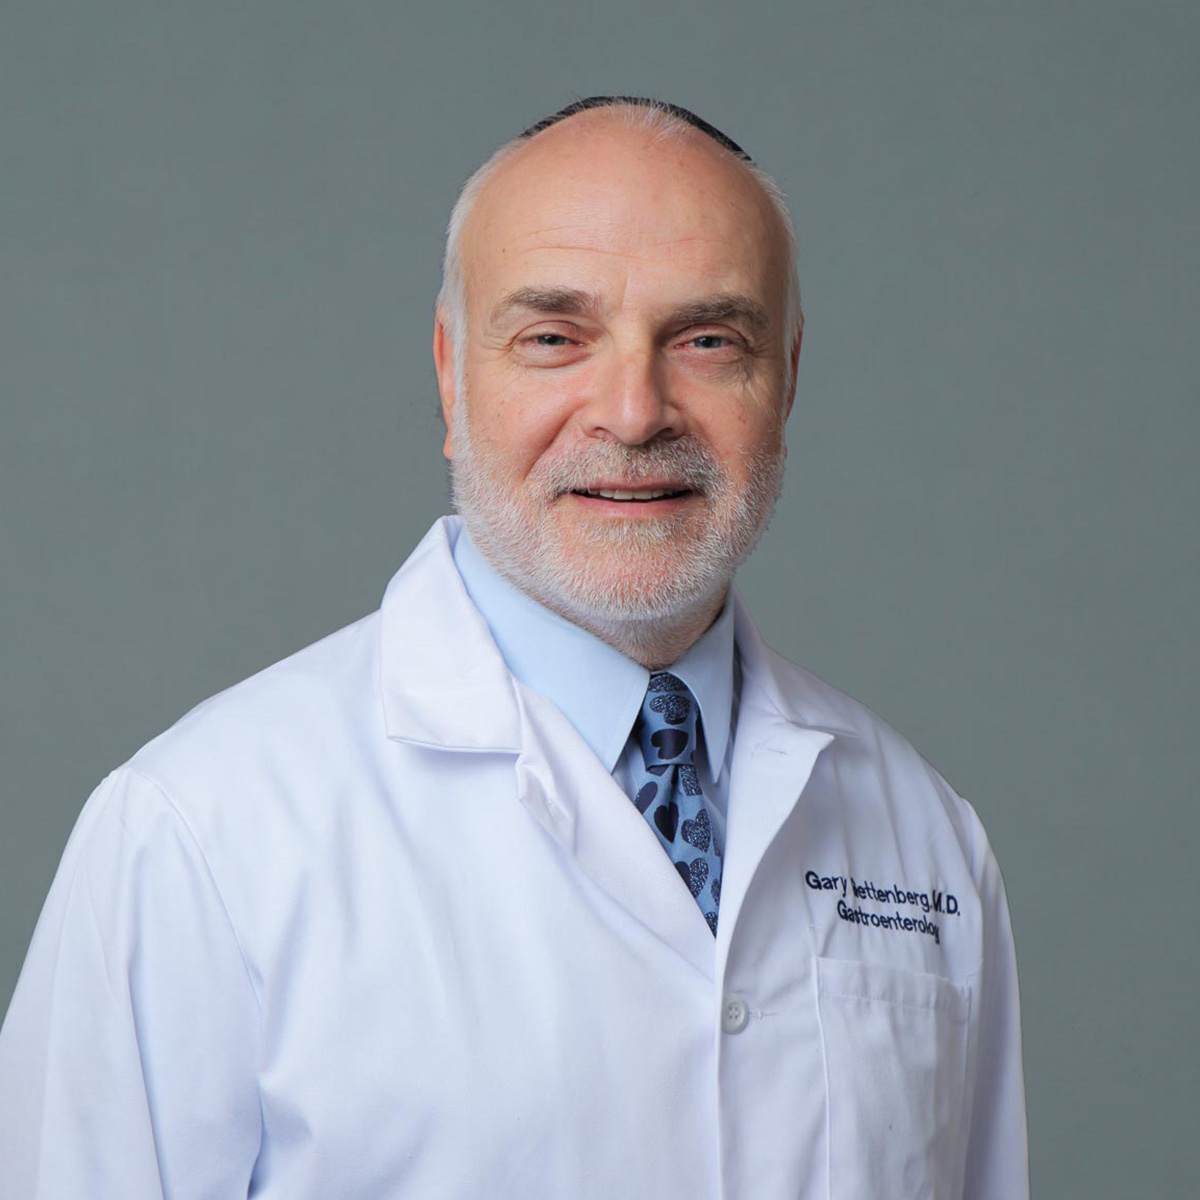 Gary Gettenberg,MD. Gastroenterology